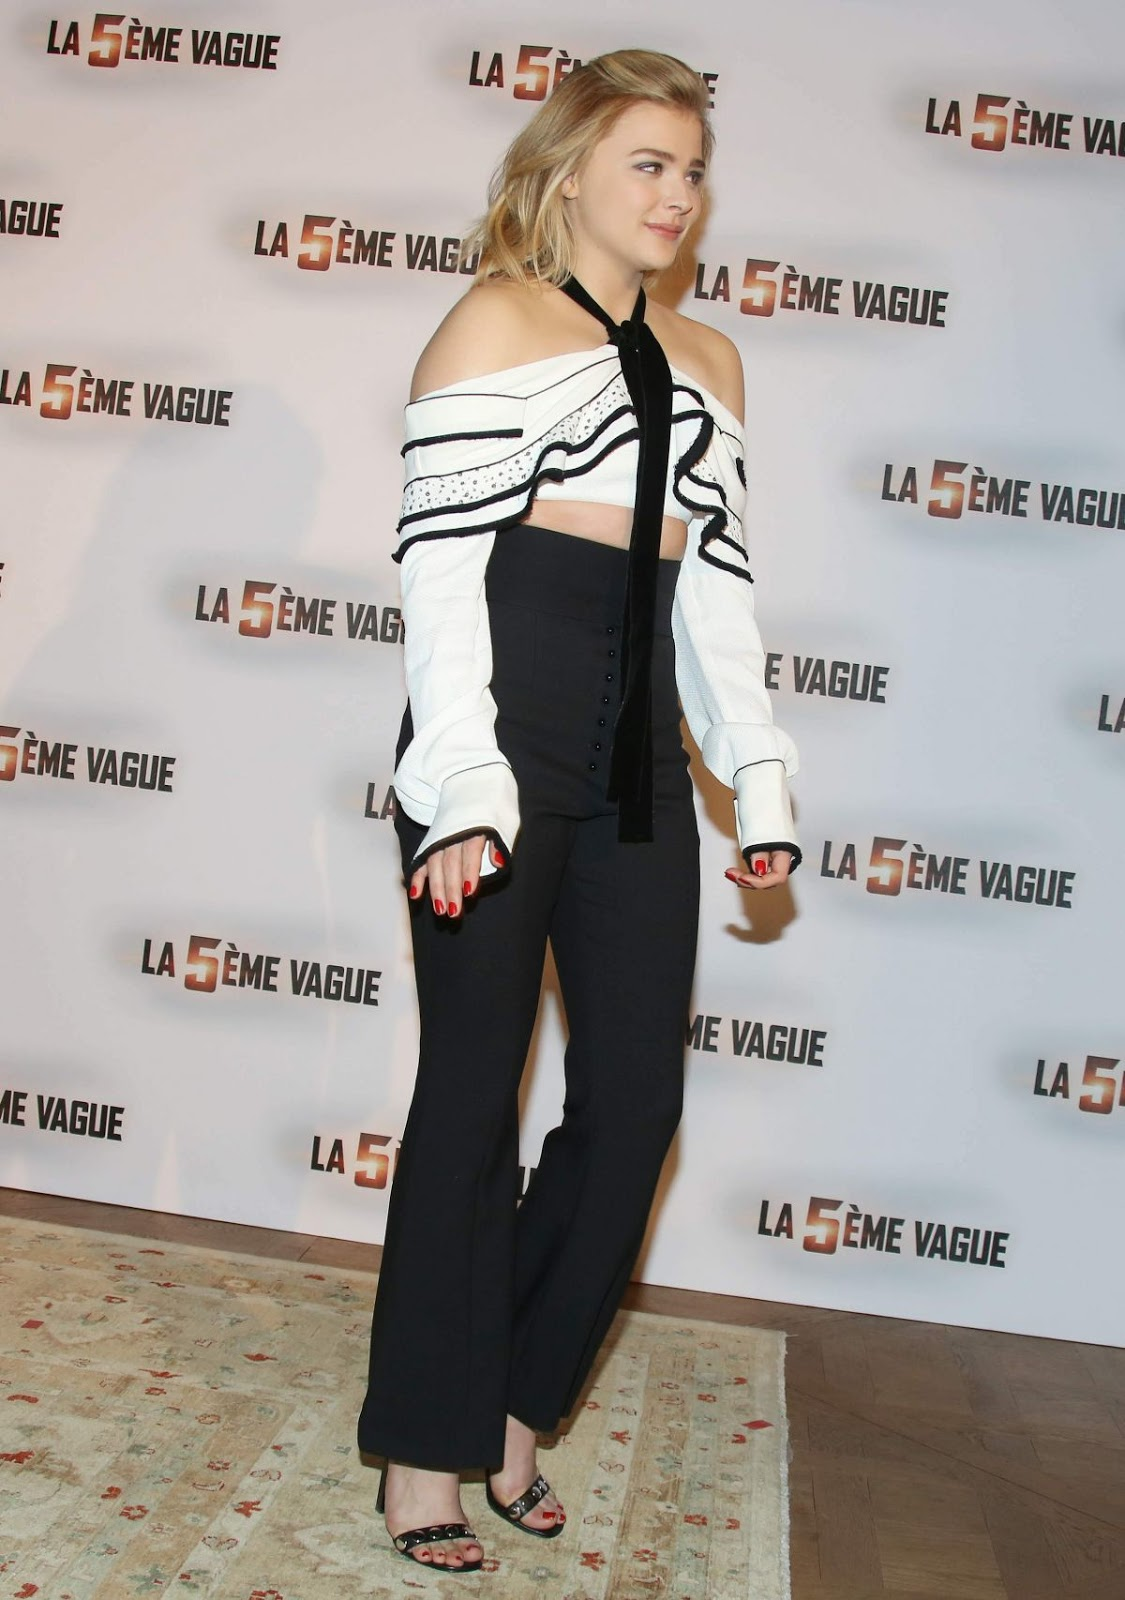 Chloe Moretz at 'The 5th Wave' Movie Paris Photocall